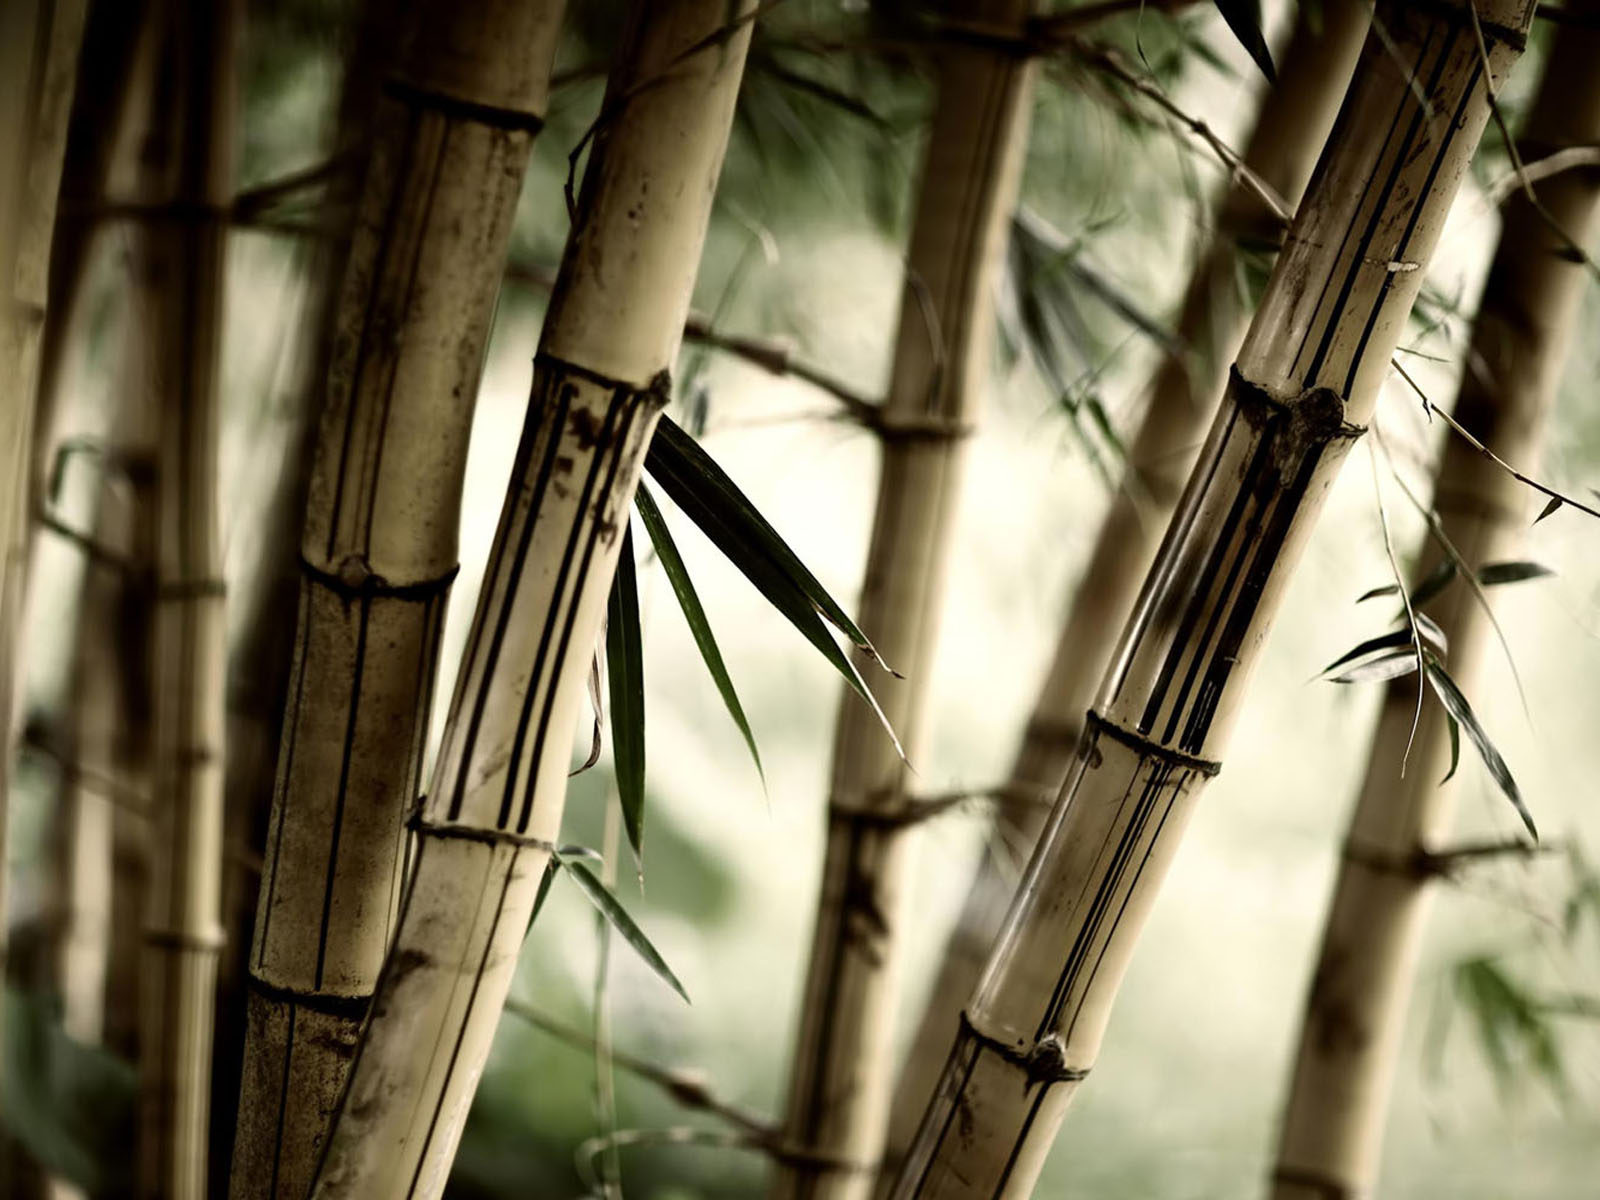 wallpapers bamboo wallpapers ForBamboo Mural Wallpaper